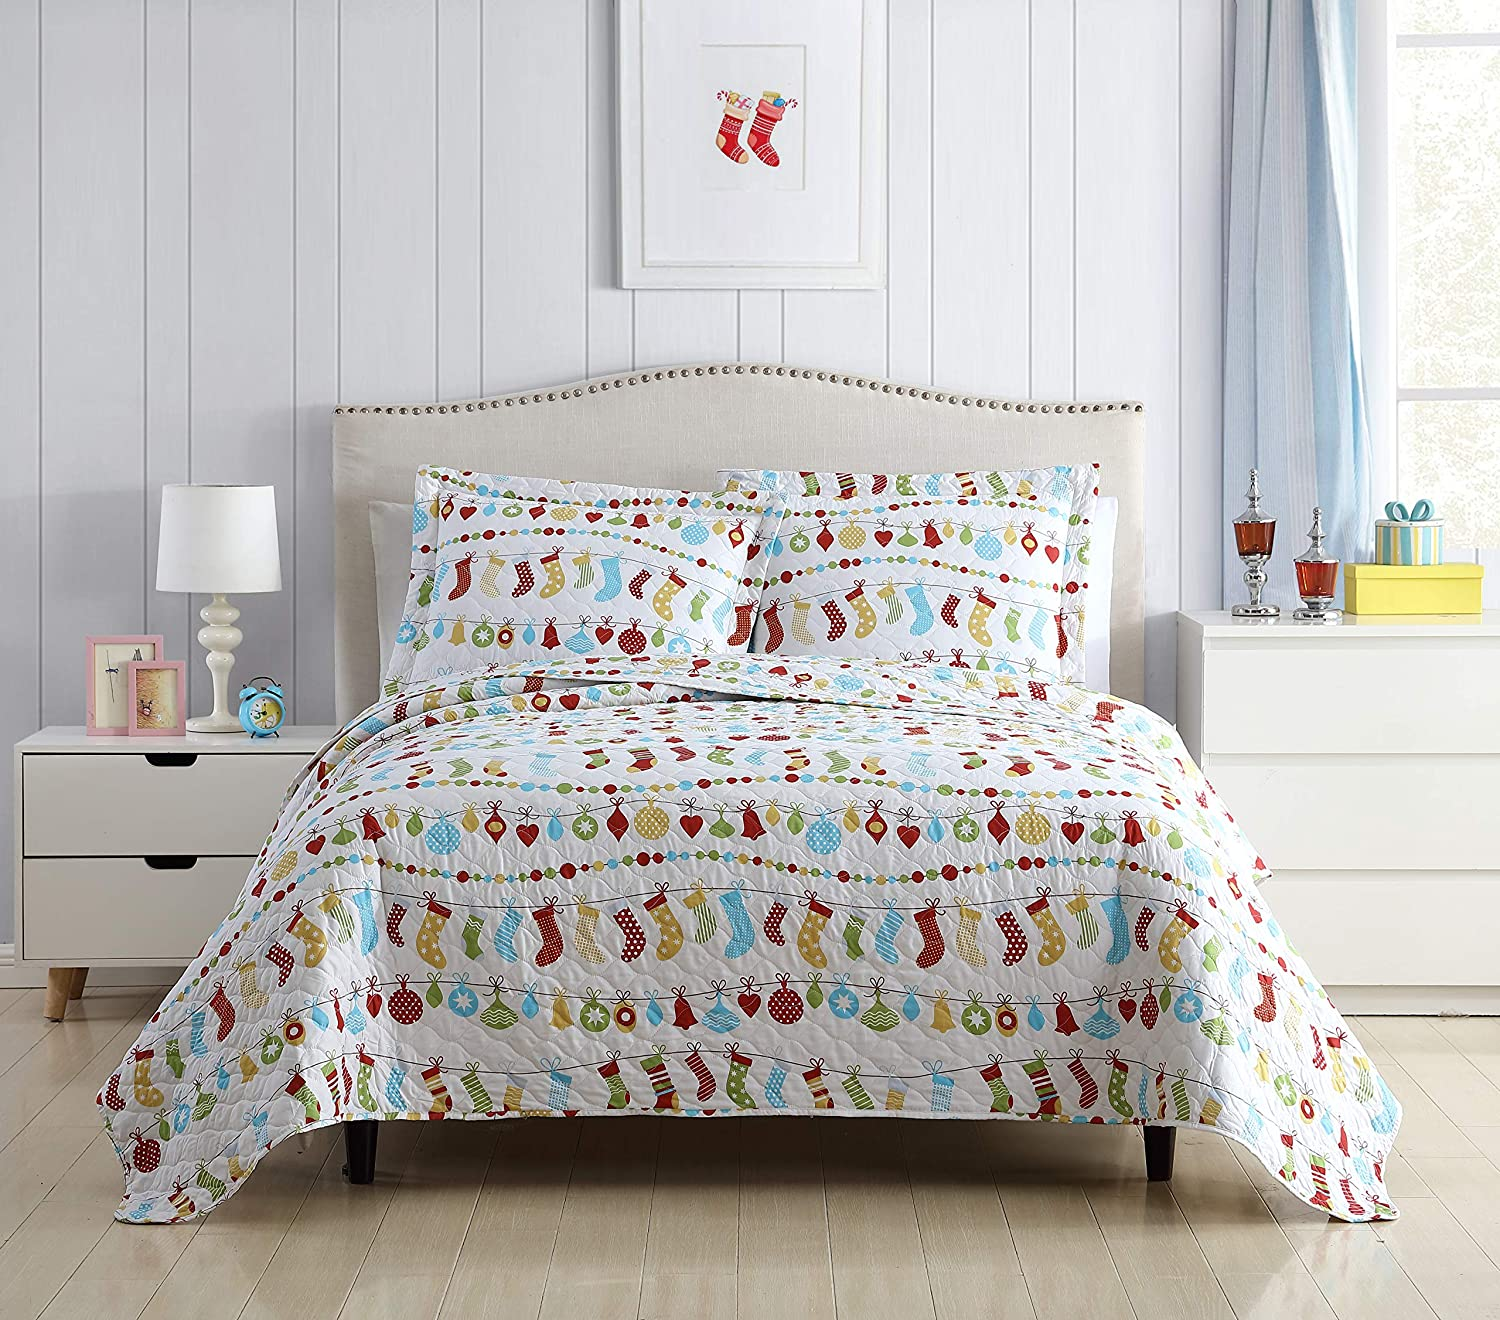 SL Spirit Linen Home EST. 1988 Holiday Collection Quilt Set - Ultra-Soft, Reversible Coverlet Bedding - Oversized Quilt with Matching Pillow Shams, Twin, Christmas